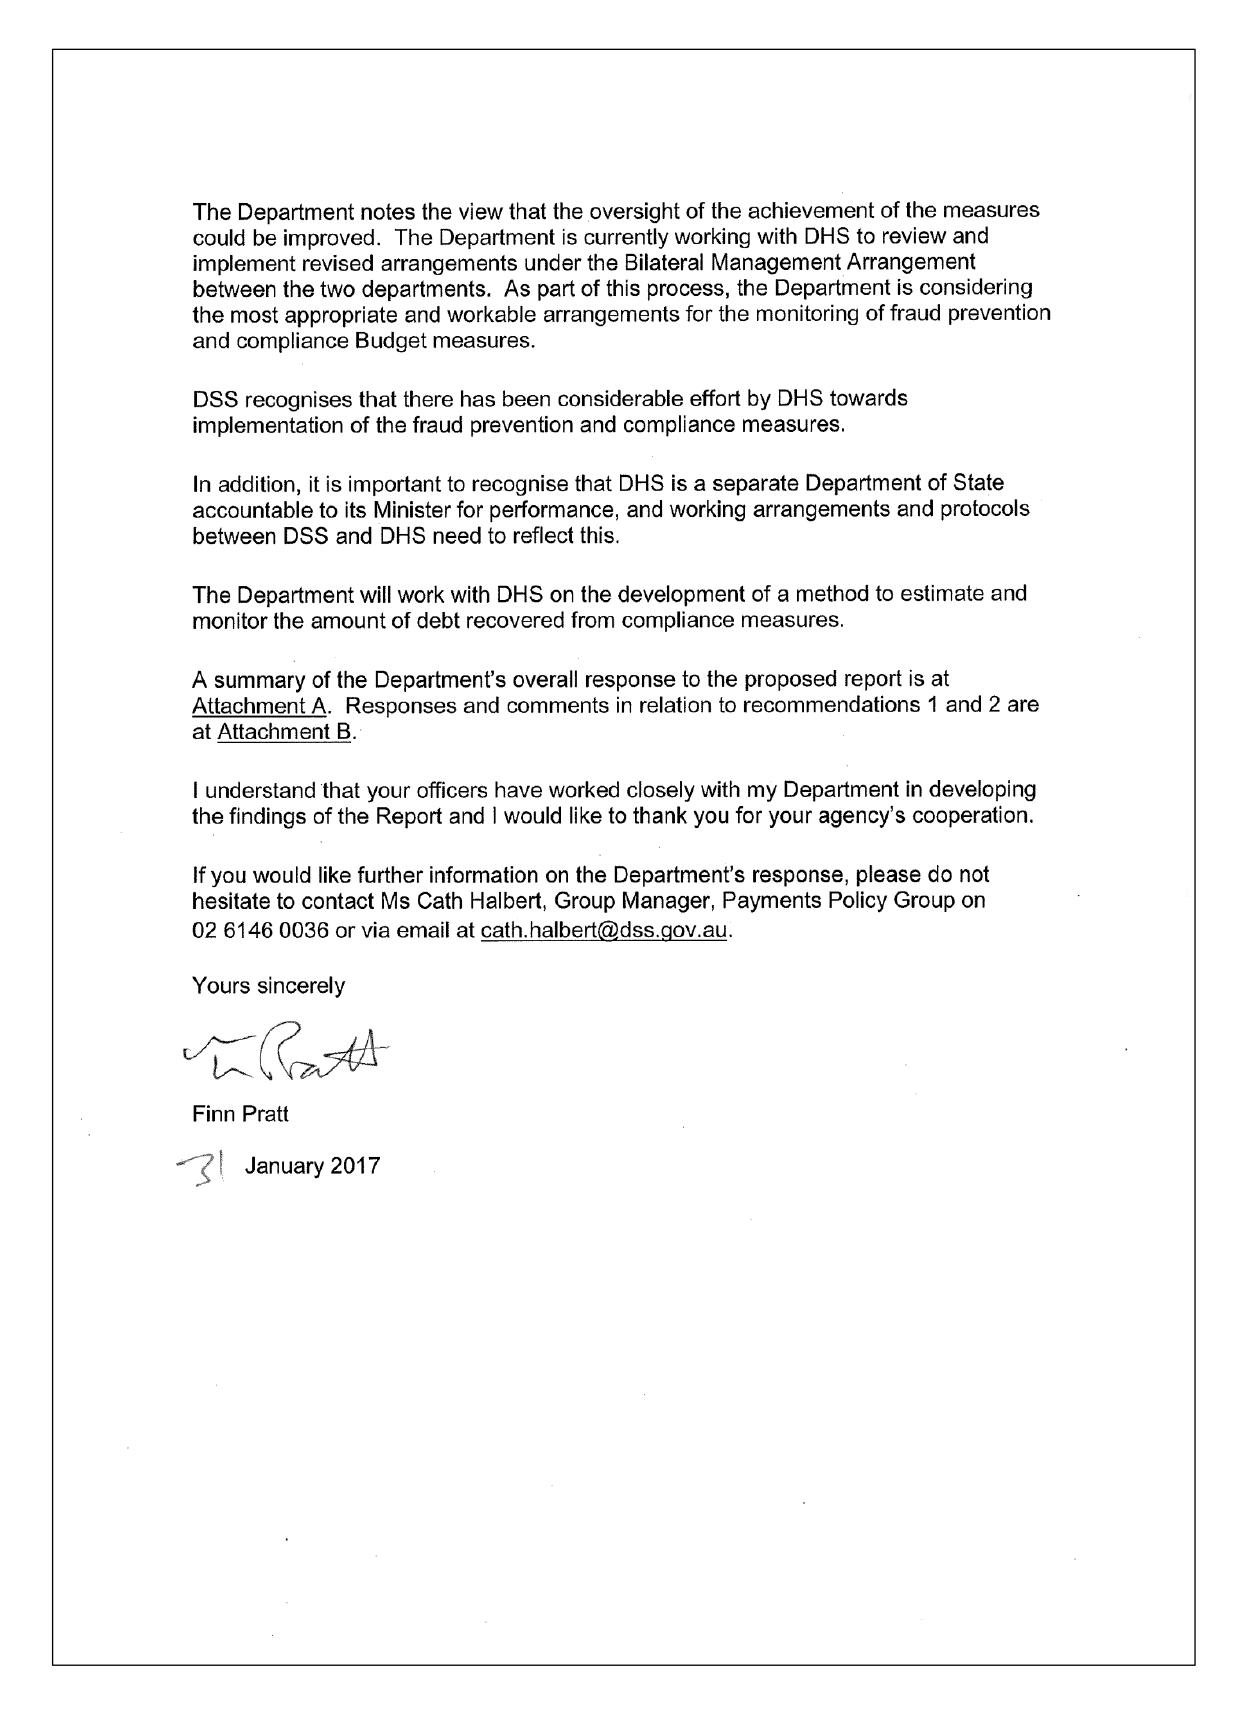 Department of Social Services response letter page 2